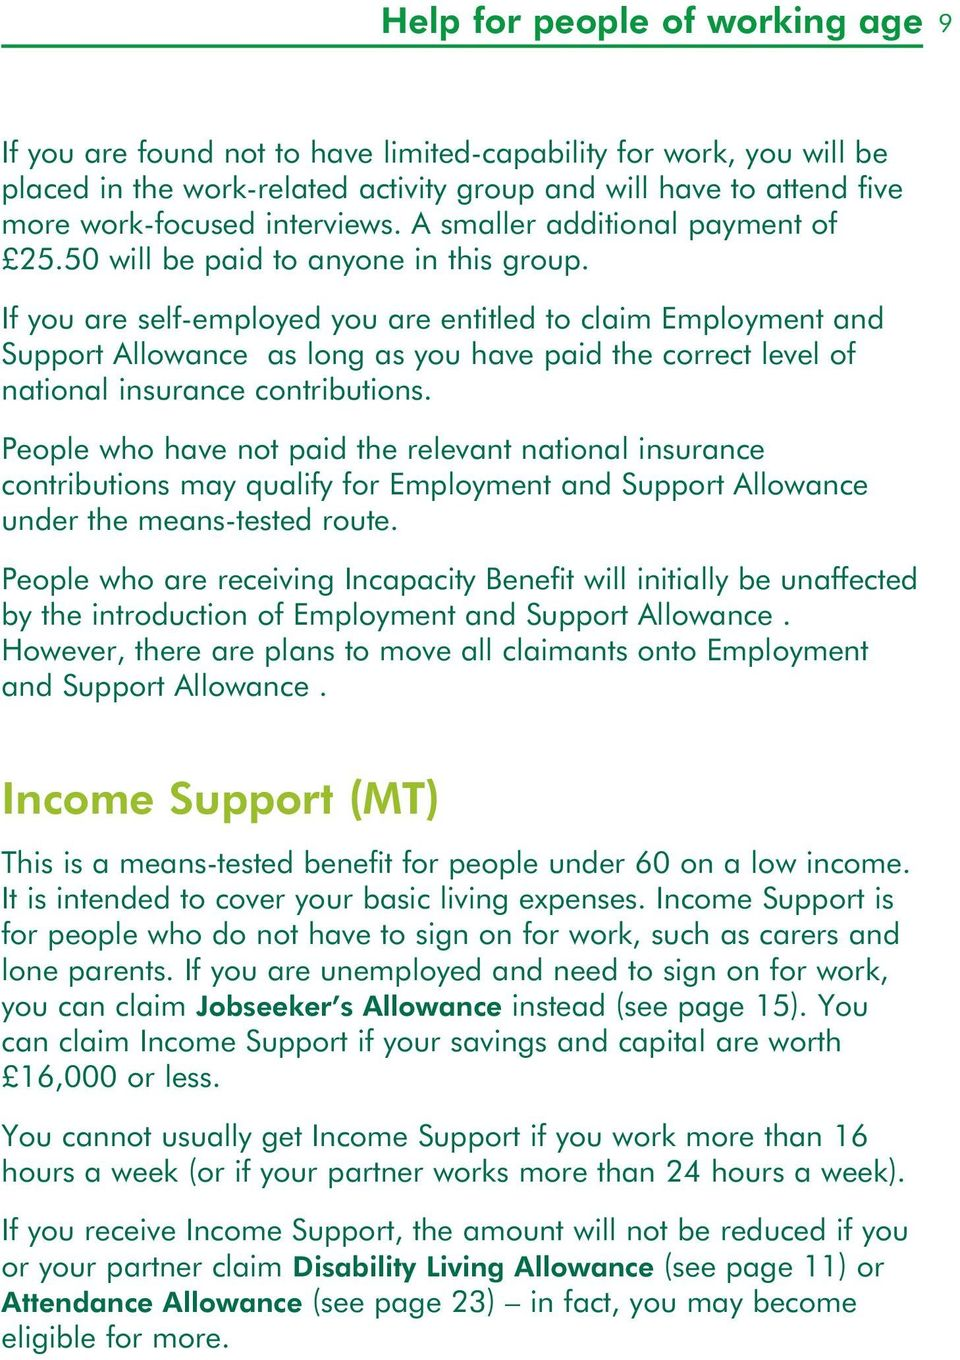 If you are self-employed you are etitled to claim Employmet ad Support Allowace as log as you have paid the correct level of atioal isurace cotributios.